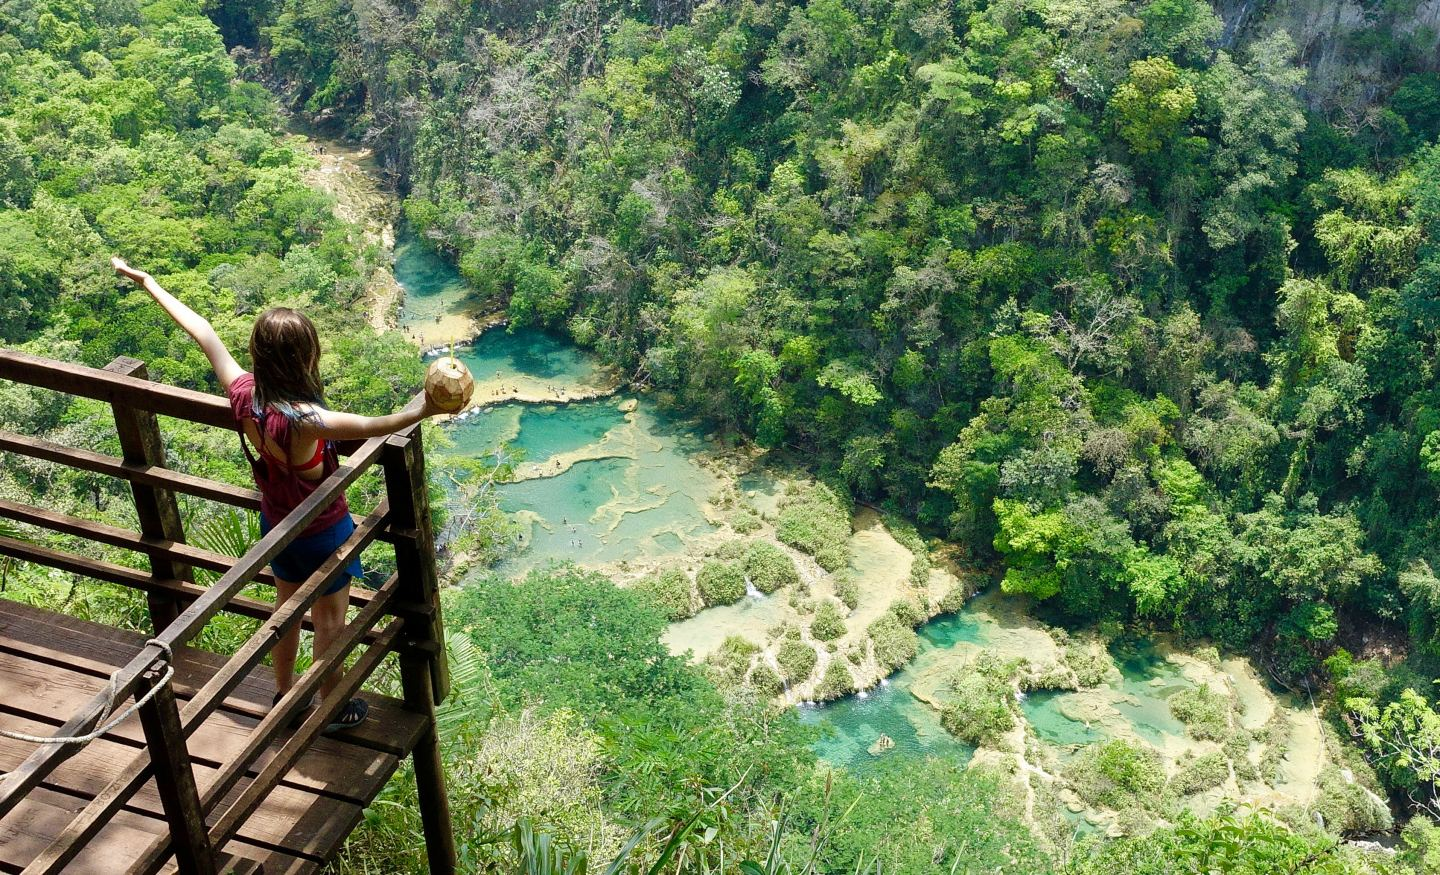 Semuc Champey: Long Road to a Jungle Oasis